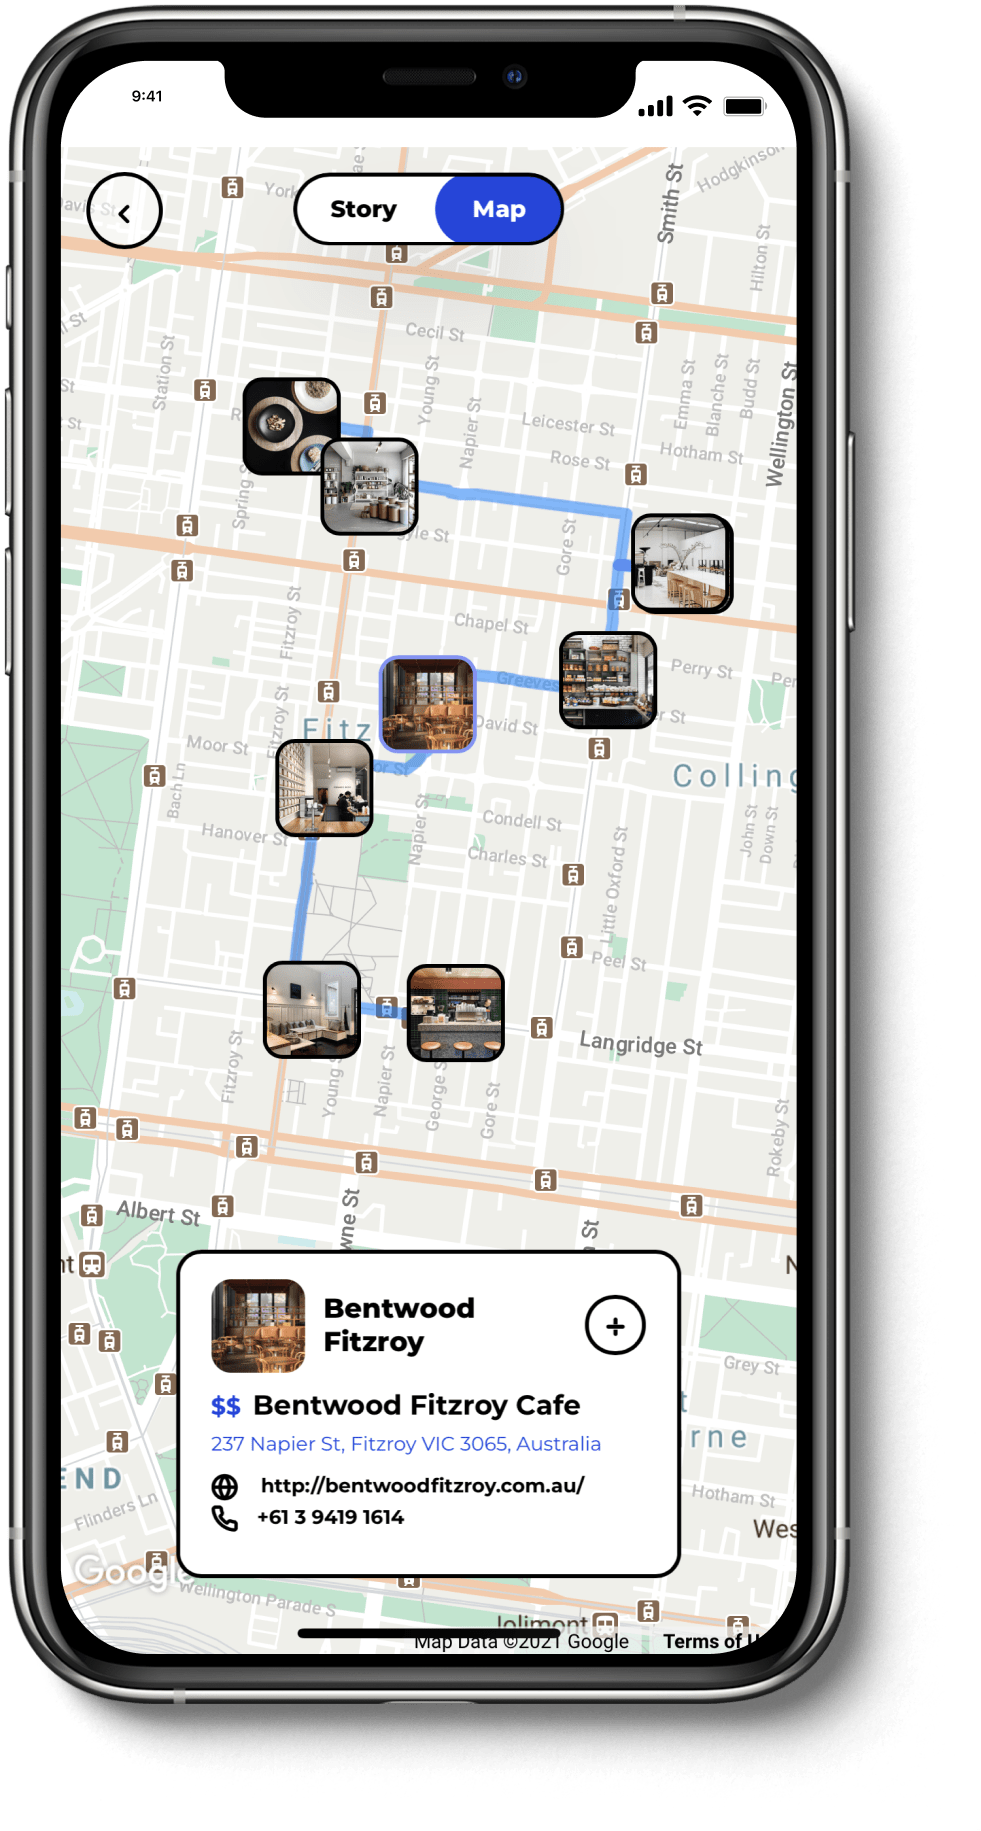 Travel stories automatically mapped and integrated with rich place info